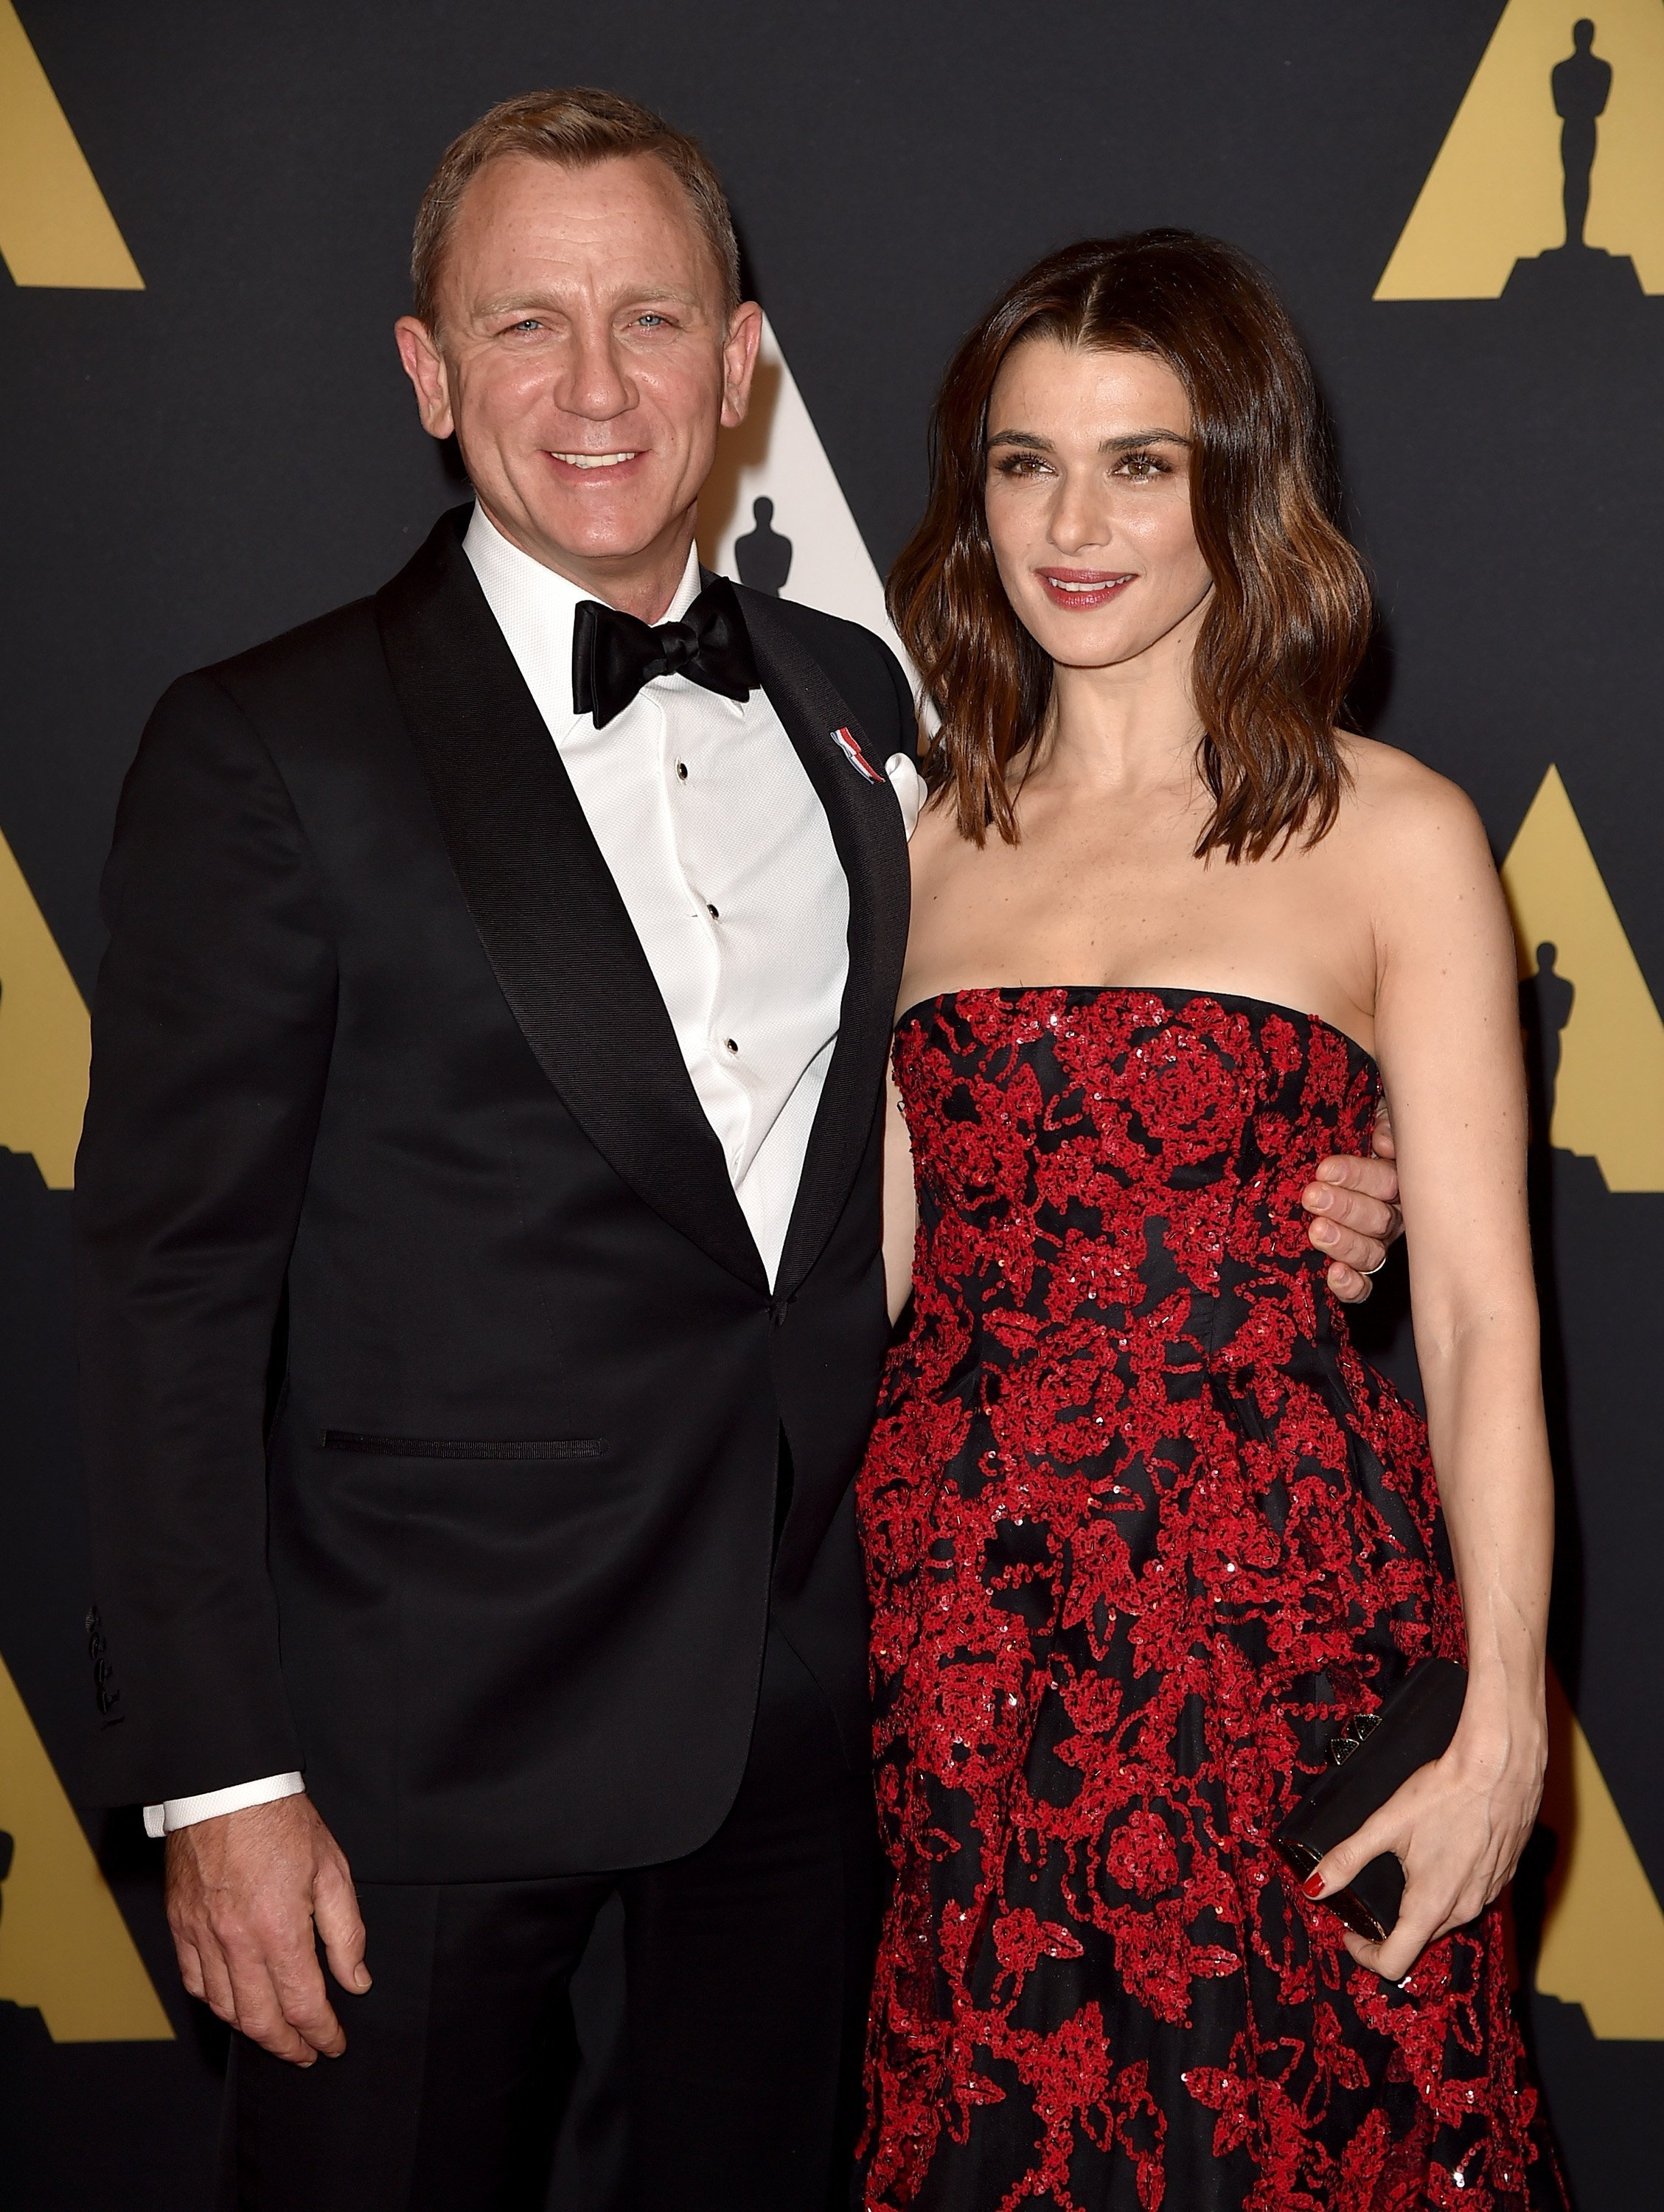 Daniel Craig and Rachel Weisz attend the Academy of Motion Picture Arts and Sciences' 7th annual Governors Awards on November 14, 2015 in Hollywood, California. | Source: Getty Images.